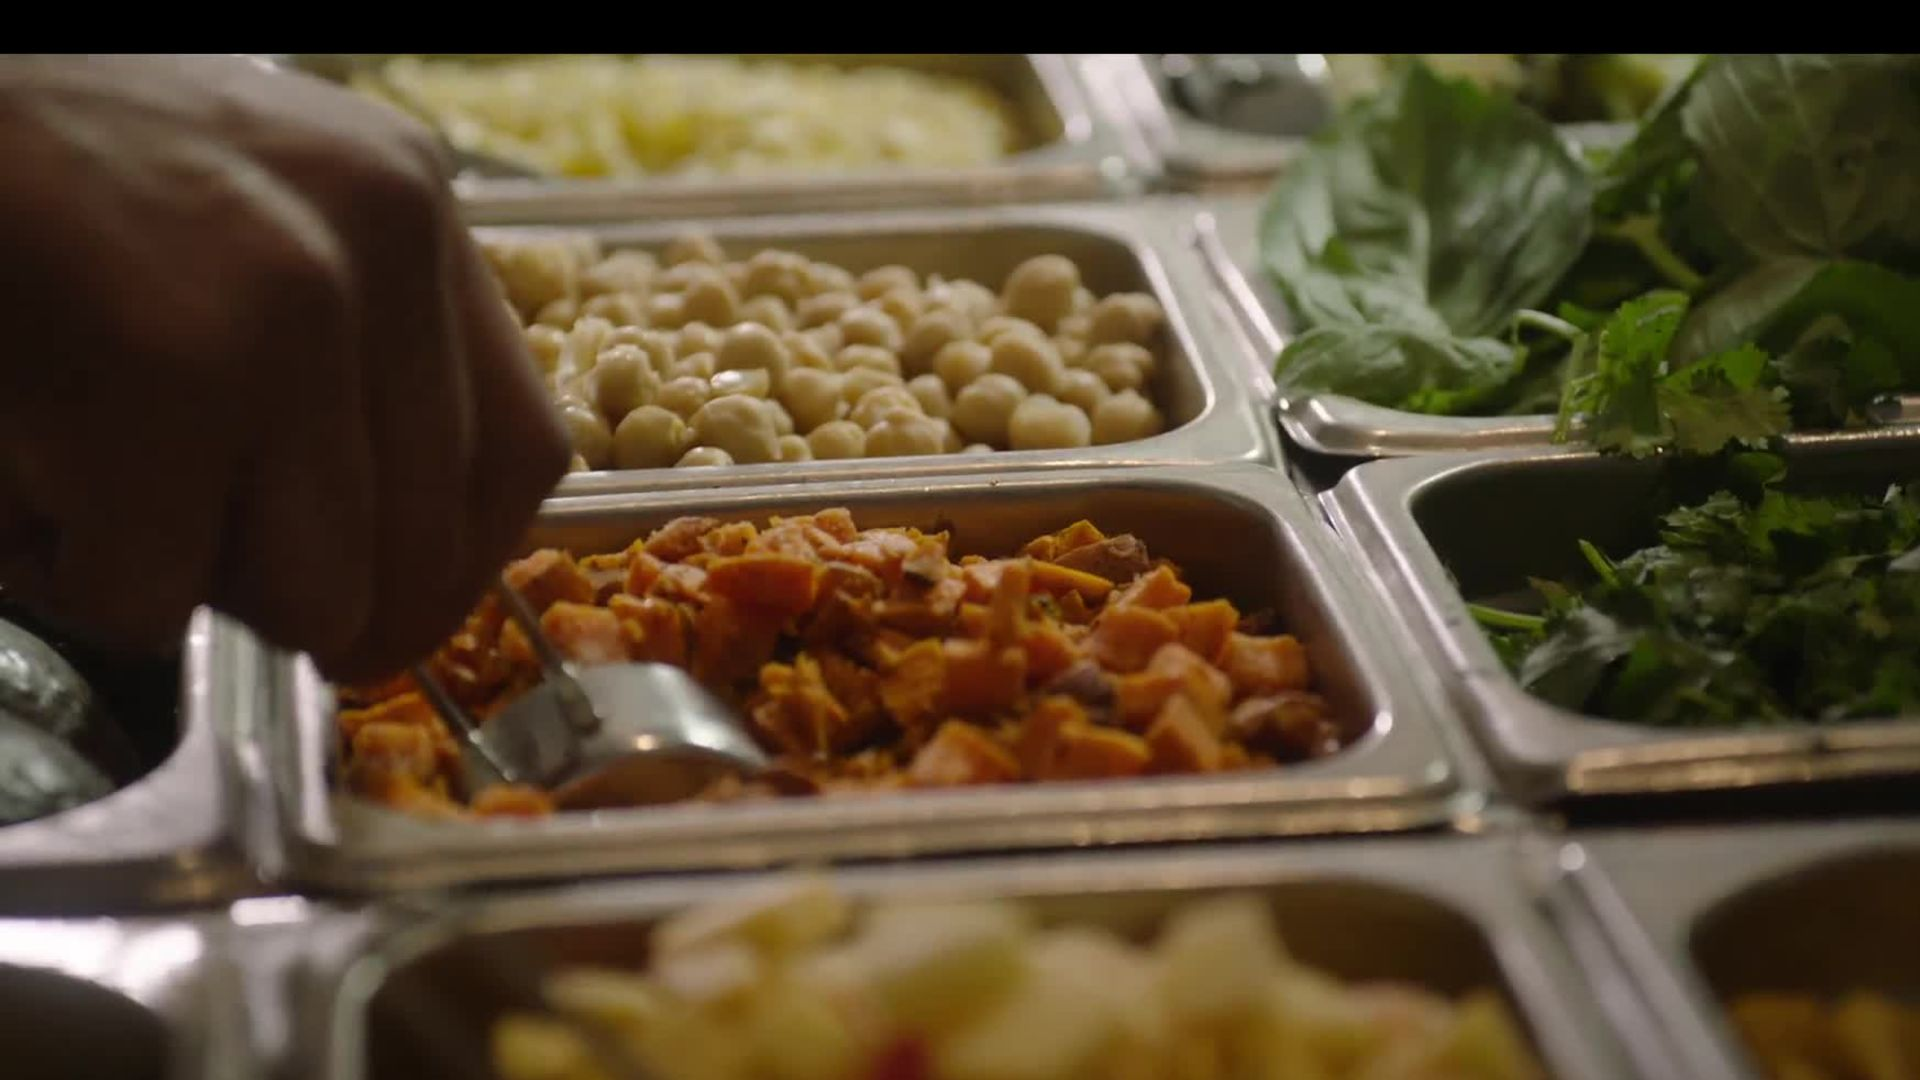 Healthy Fast Food? Sweetgreen Is Revolutionizing On-the-Go Meals